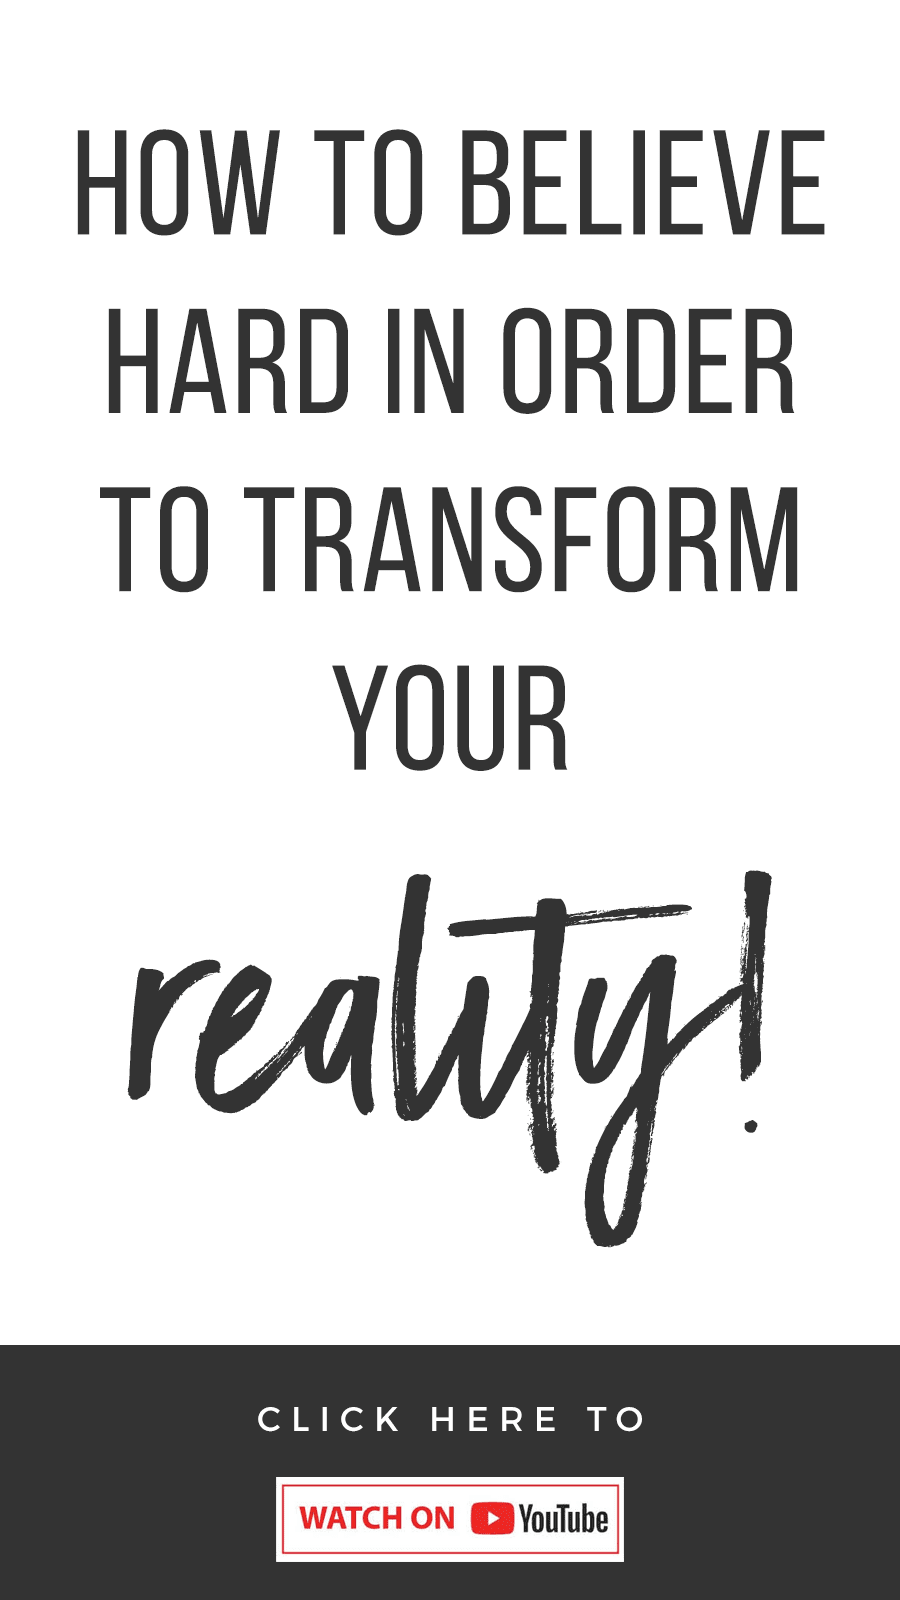 How To Believe Hard To Transform Your Reality